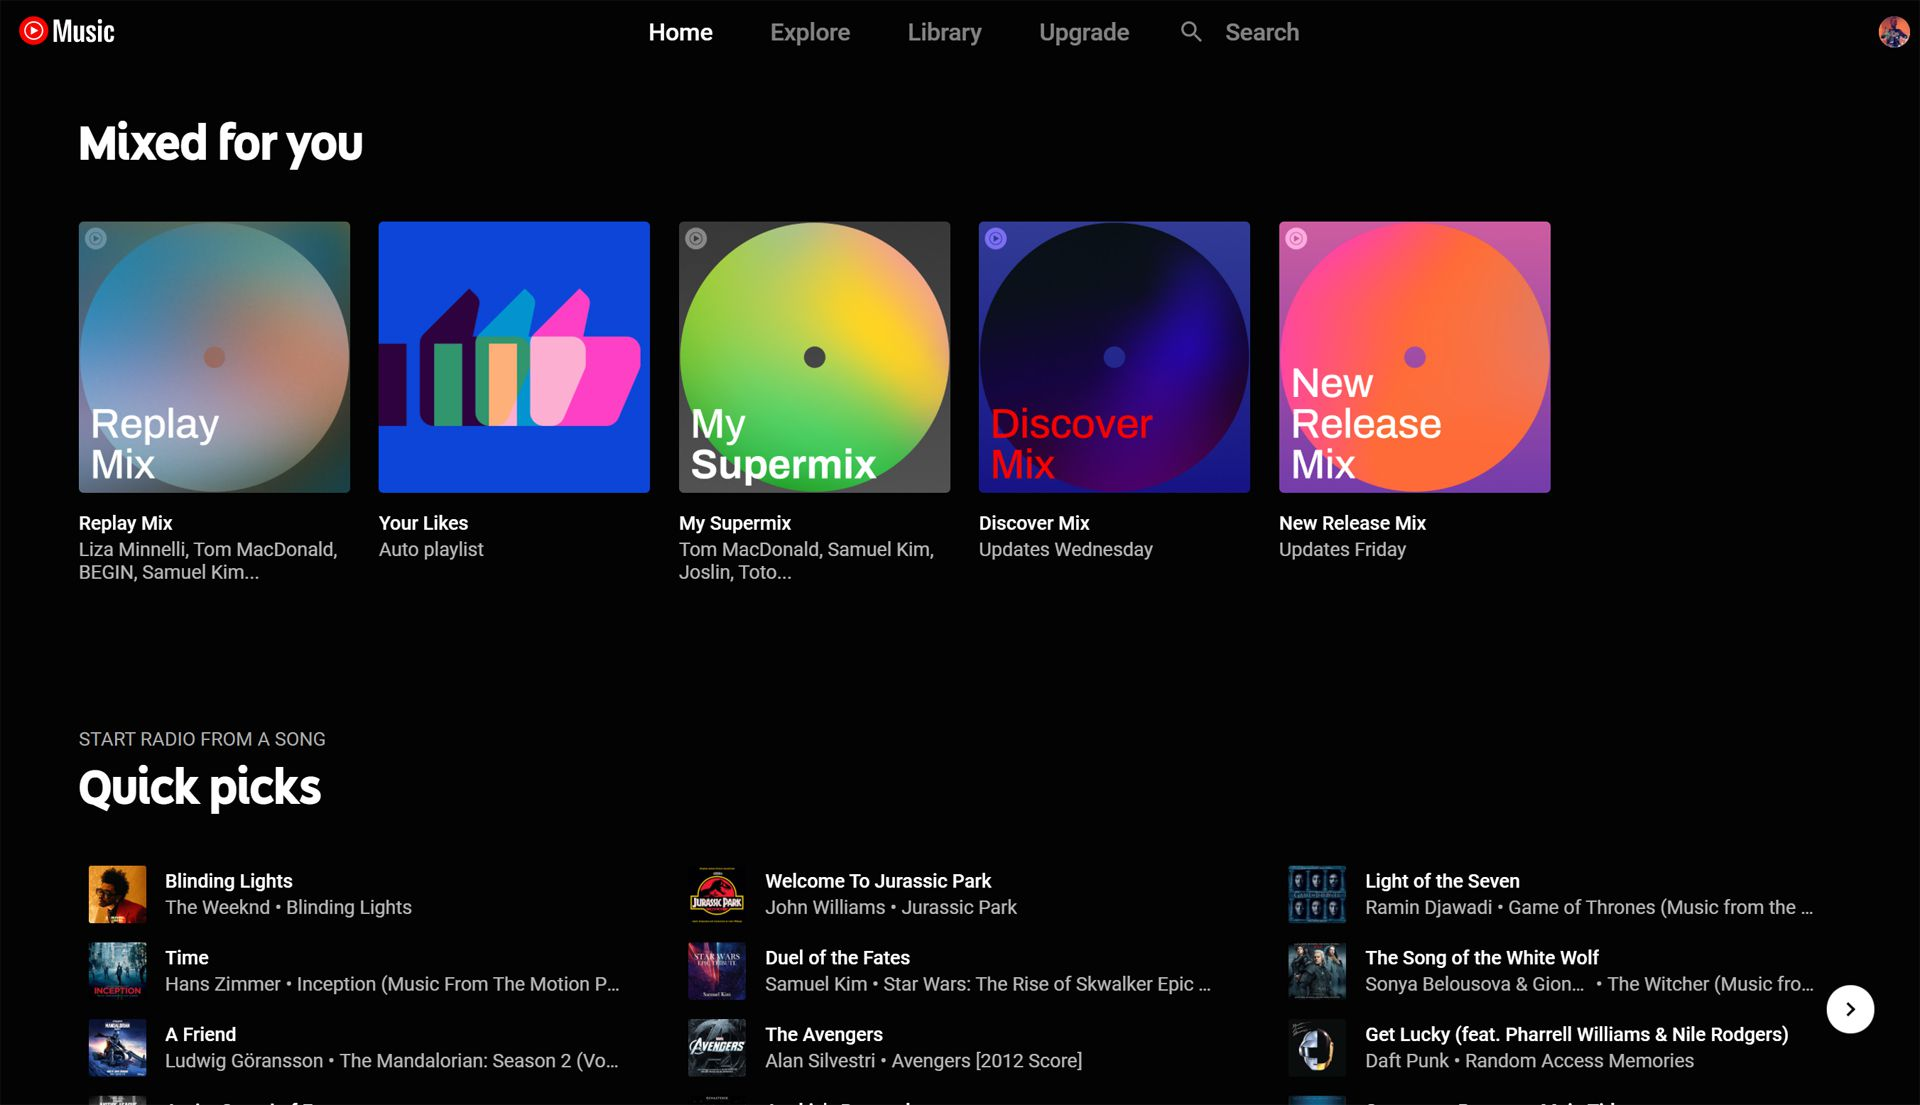 Front page of YouTube Music with Replay Mix in Mixed for you category.